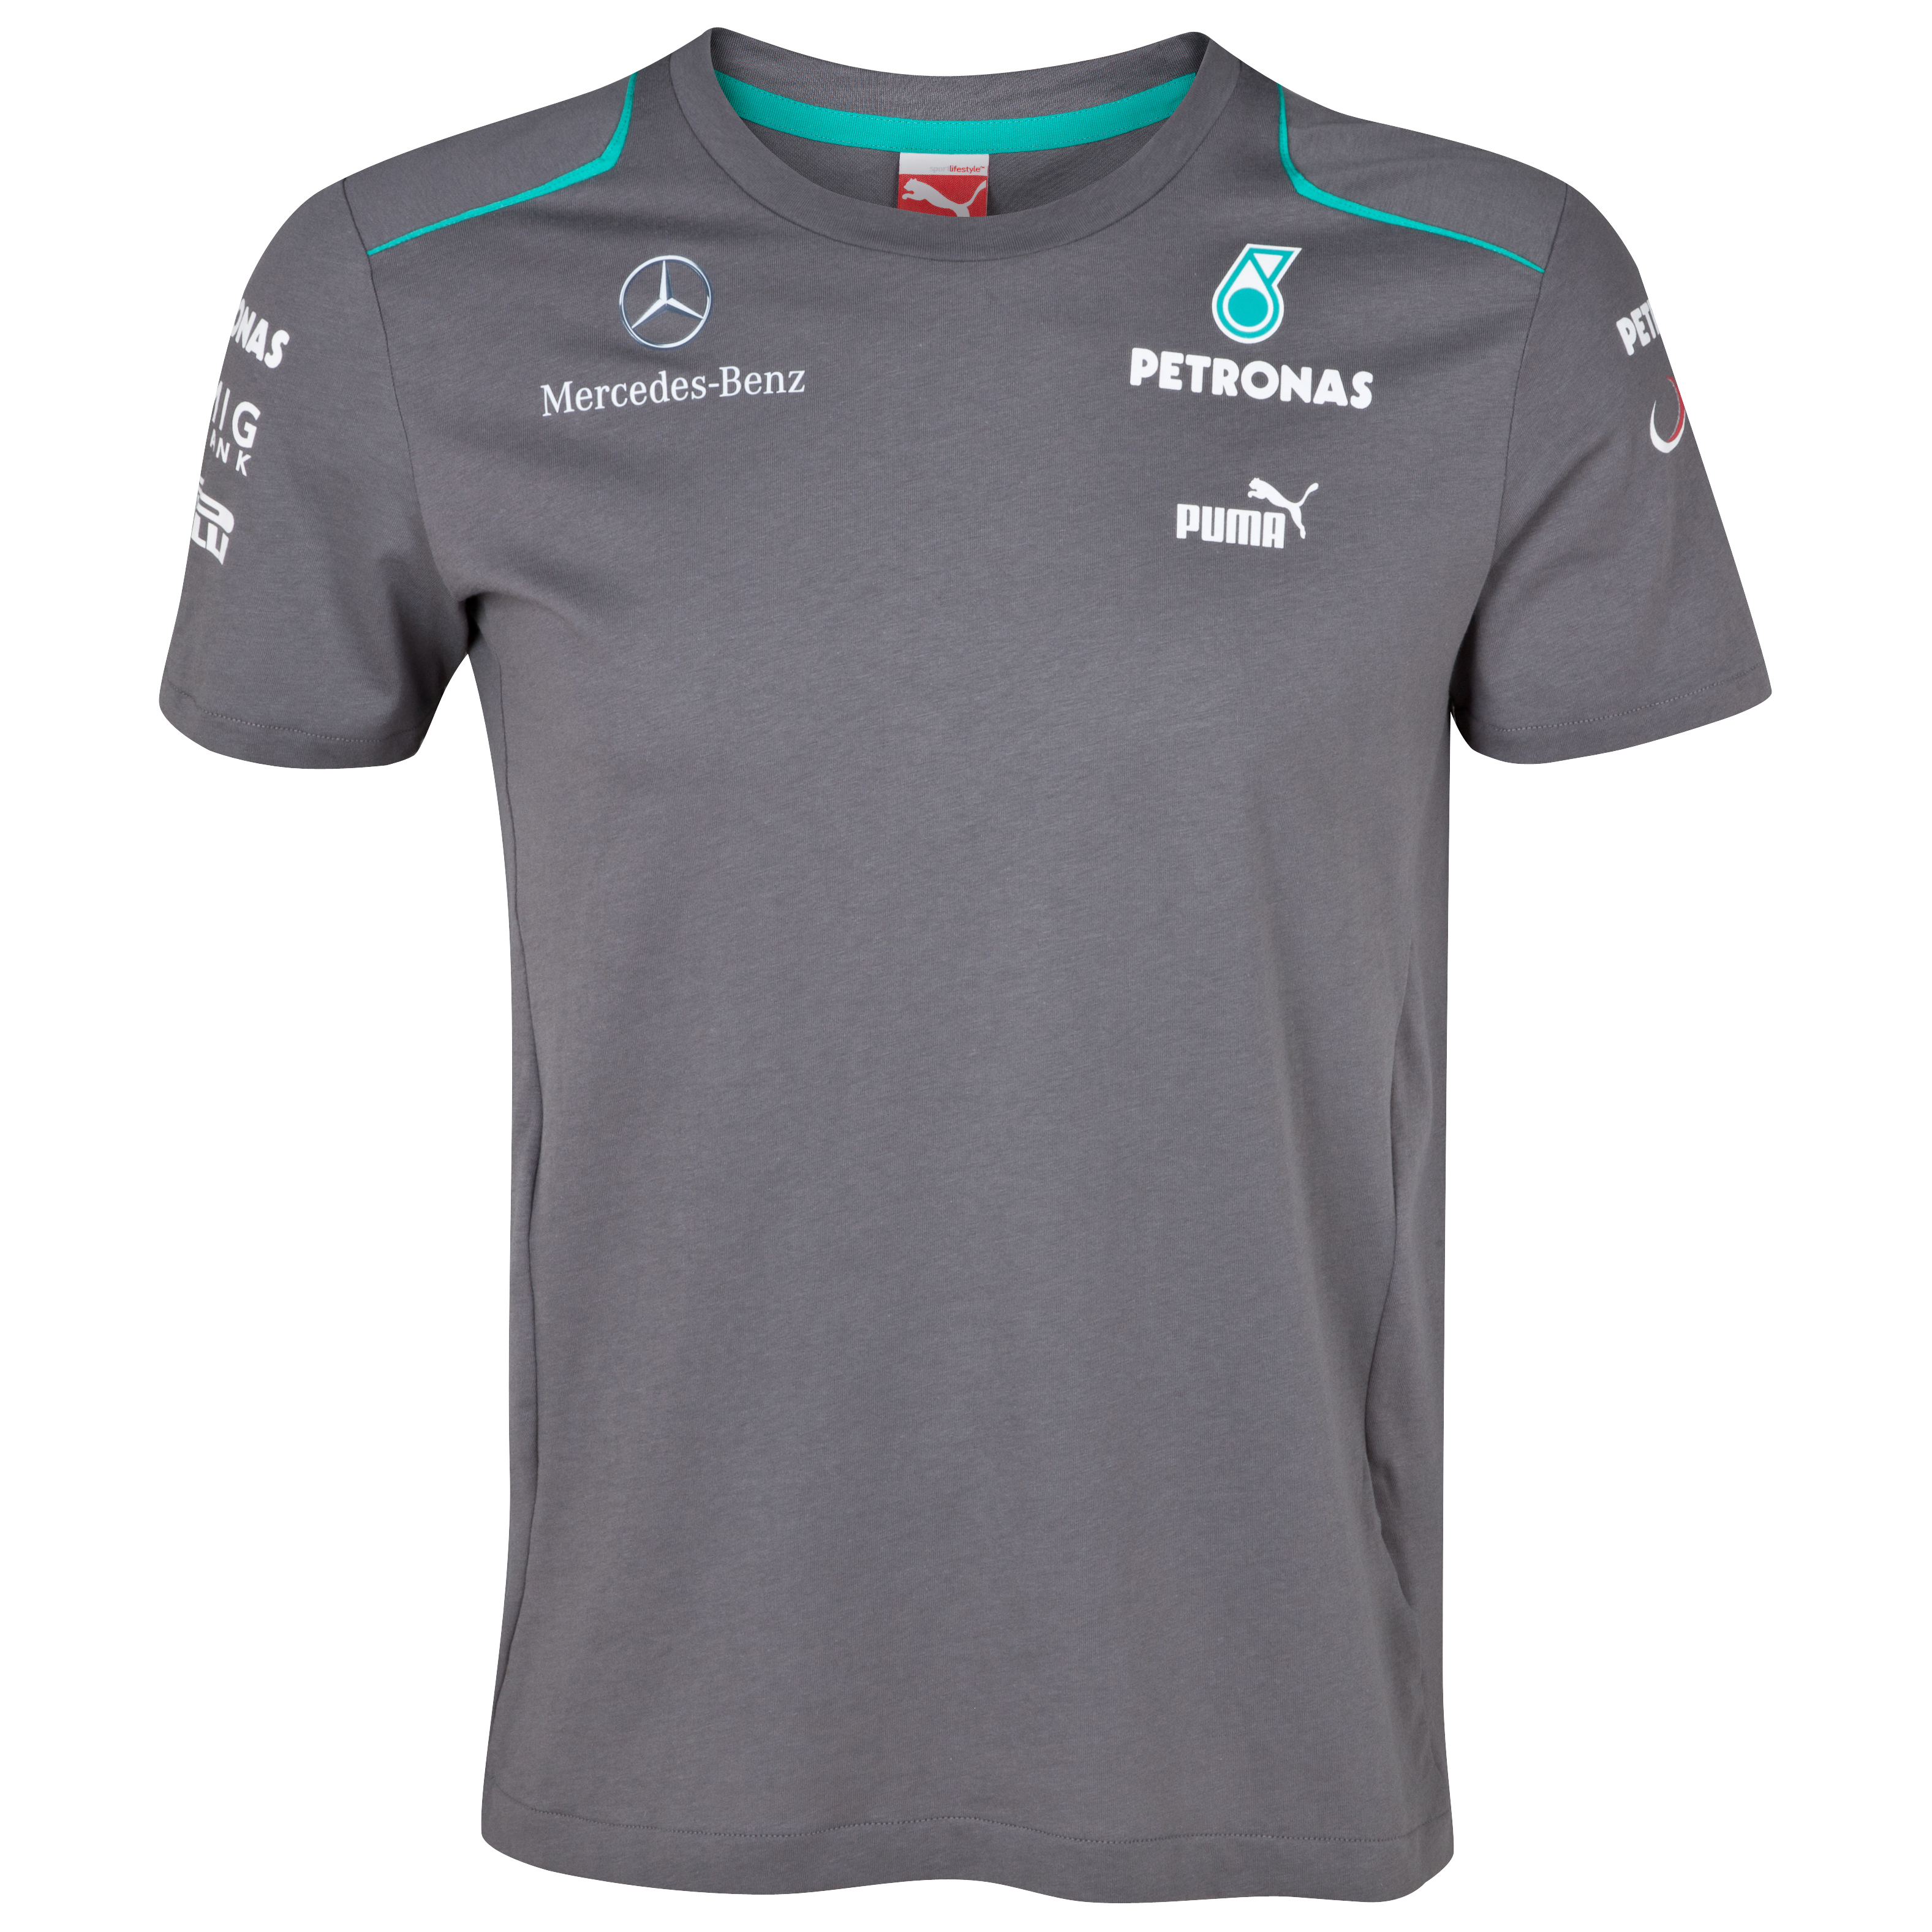 Mercedes AMG Petronas 2013 T-Shirt Grey